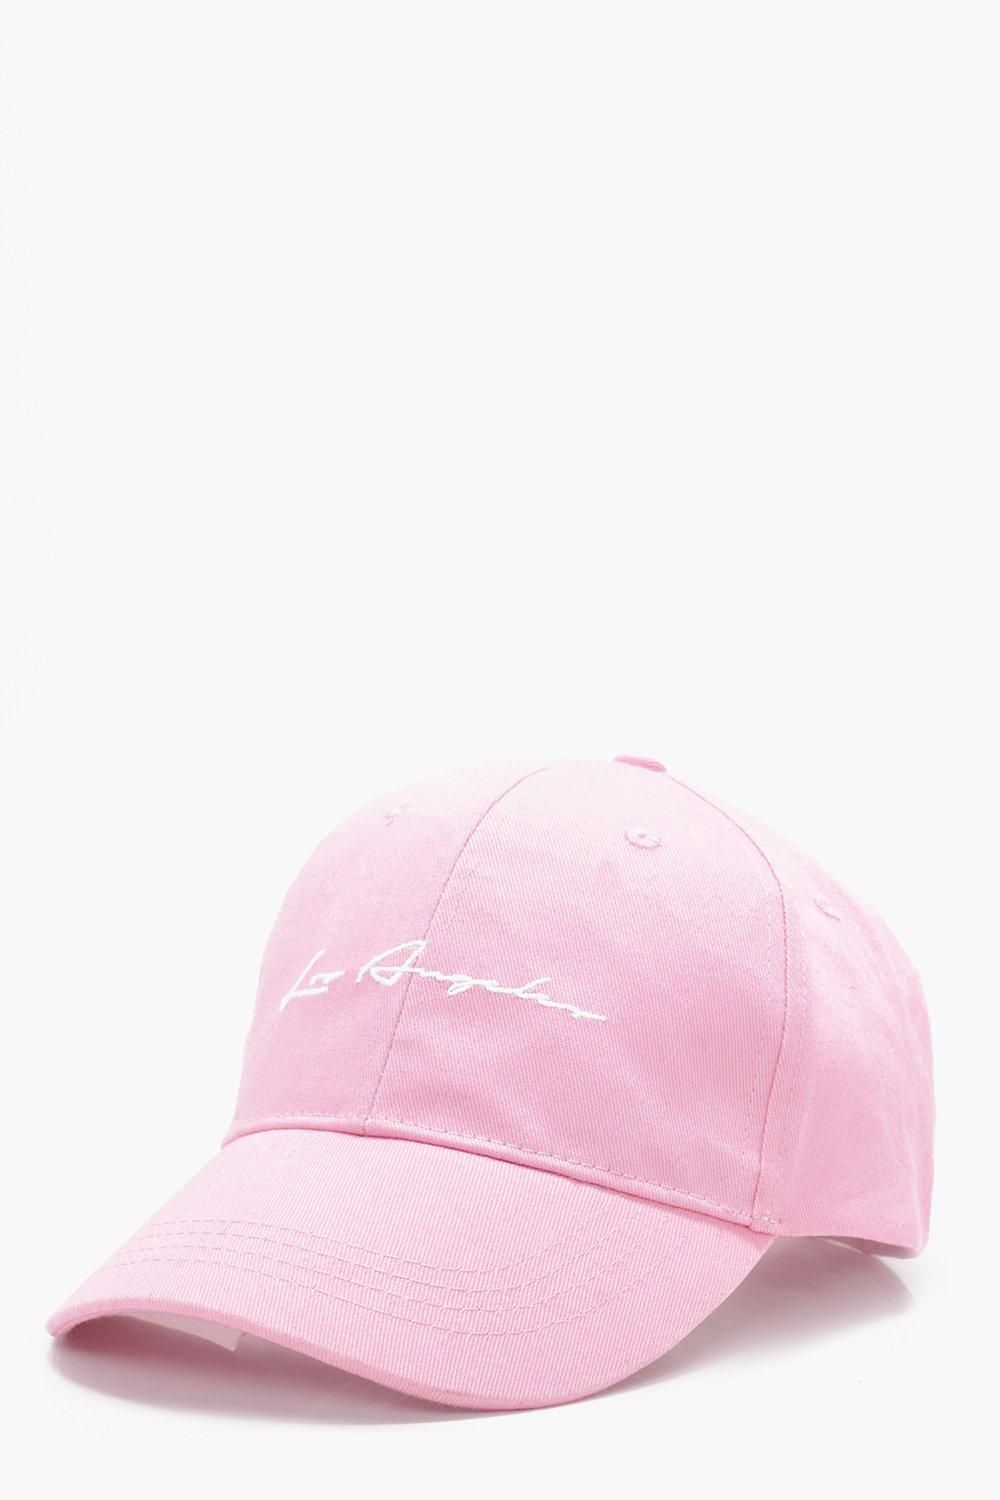 Angeles Signature Embroidered Cap - pink - Los Ang